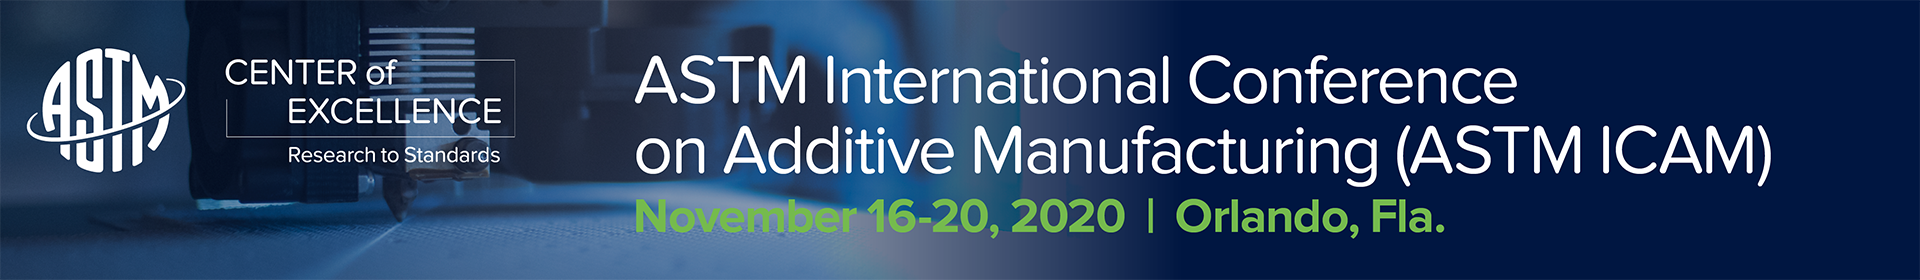 ASTM International Conference on Additive Manufacturing (ASTM ICAM 2020) Event Banner